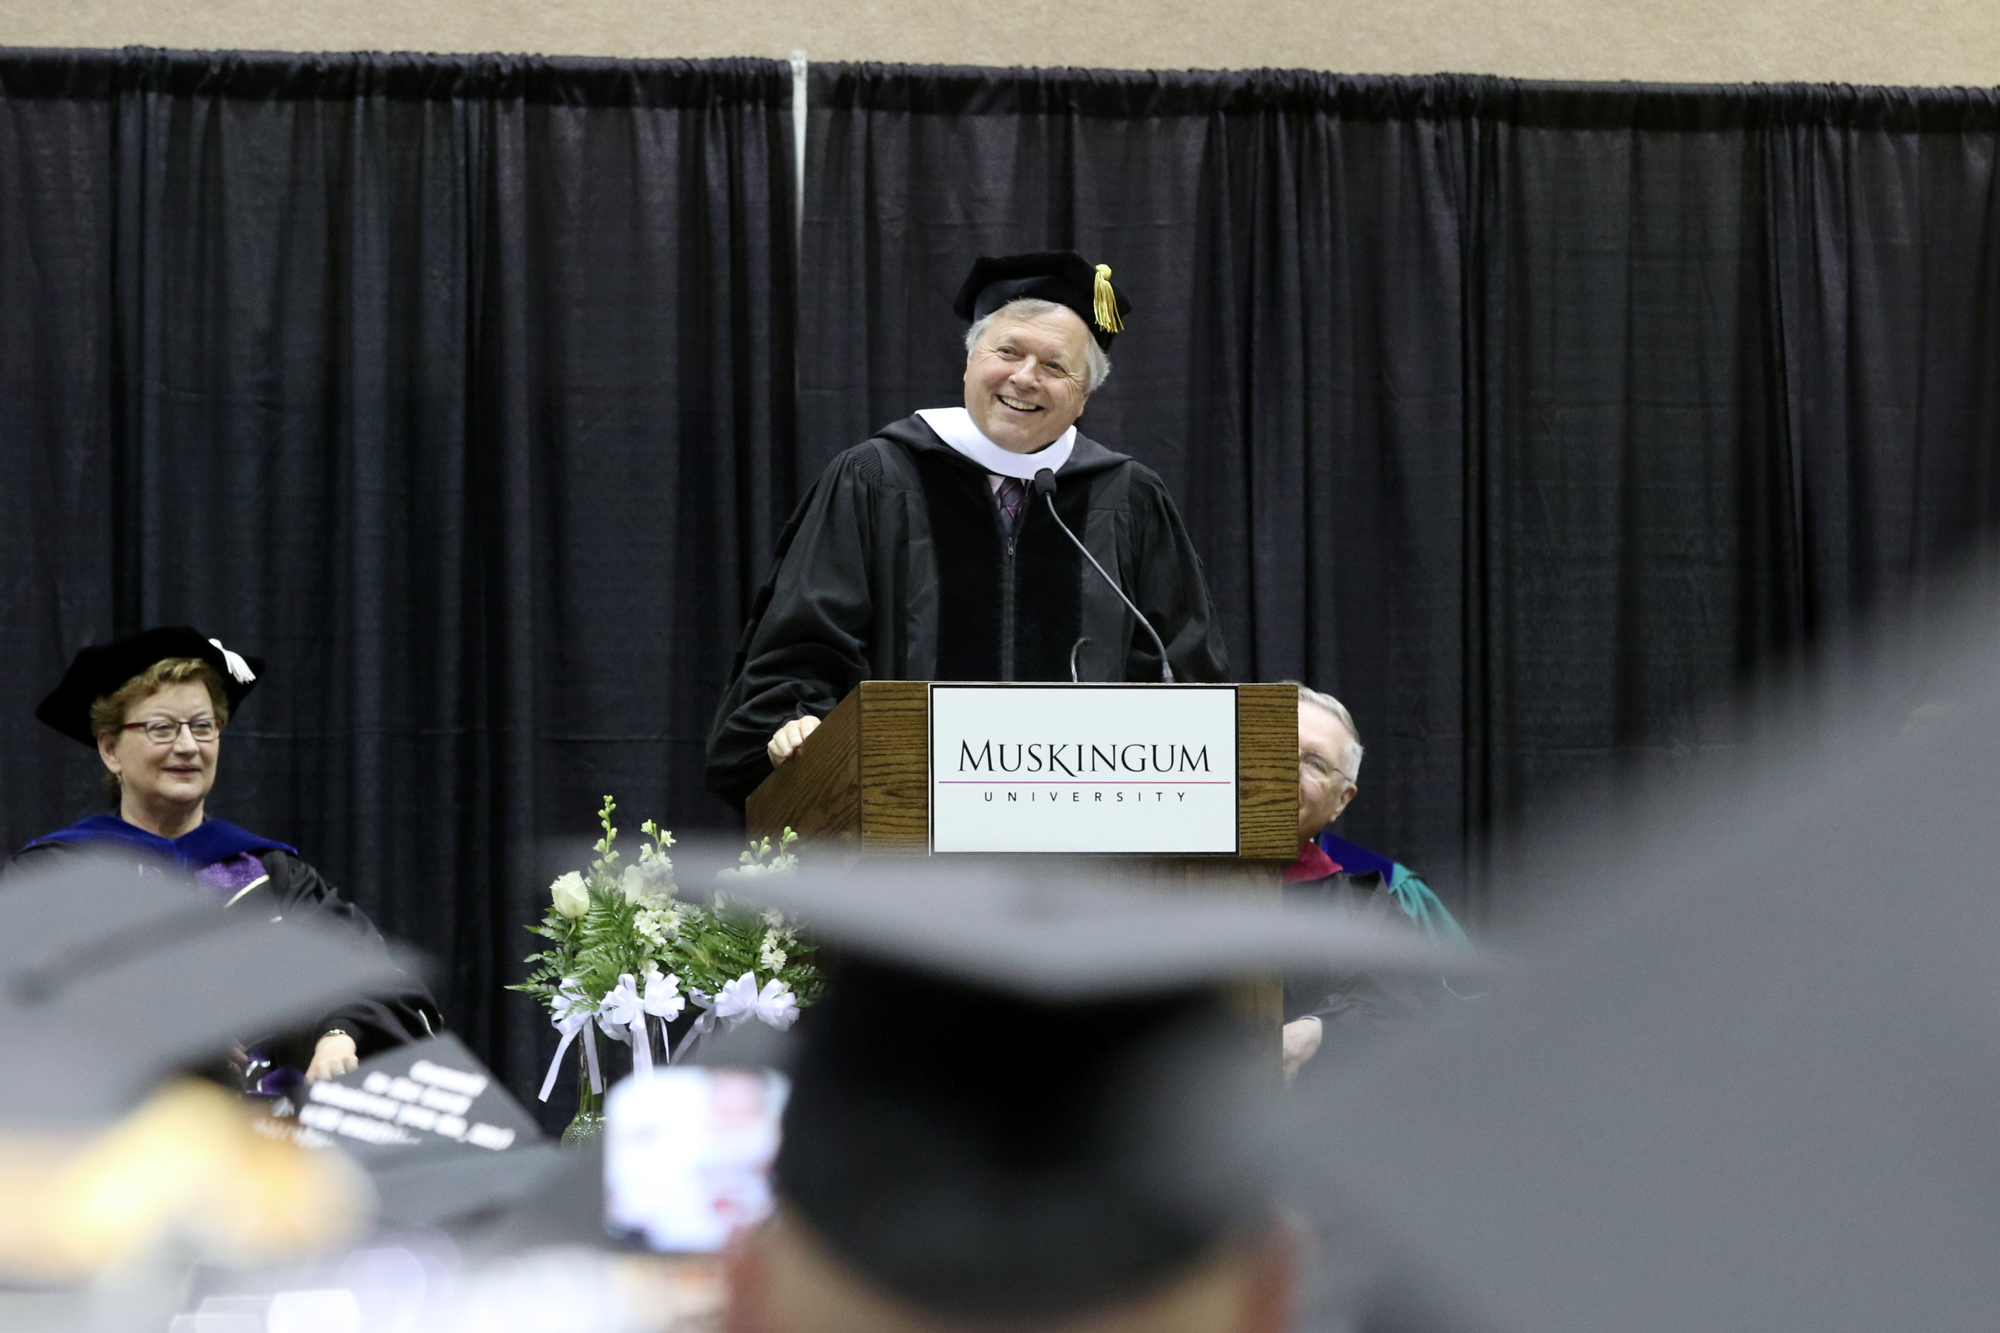 Dan Hughes speaking to the graduates